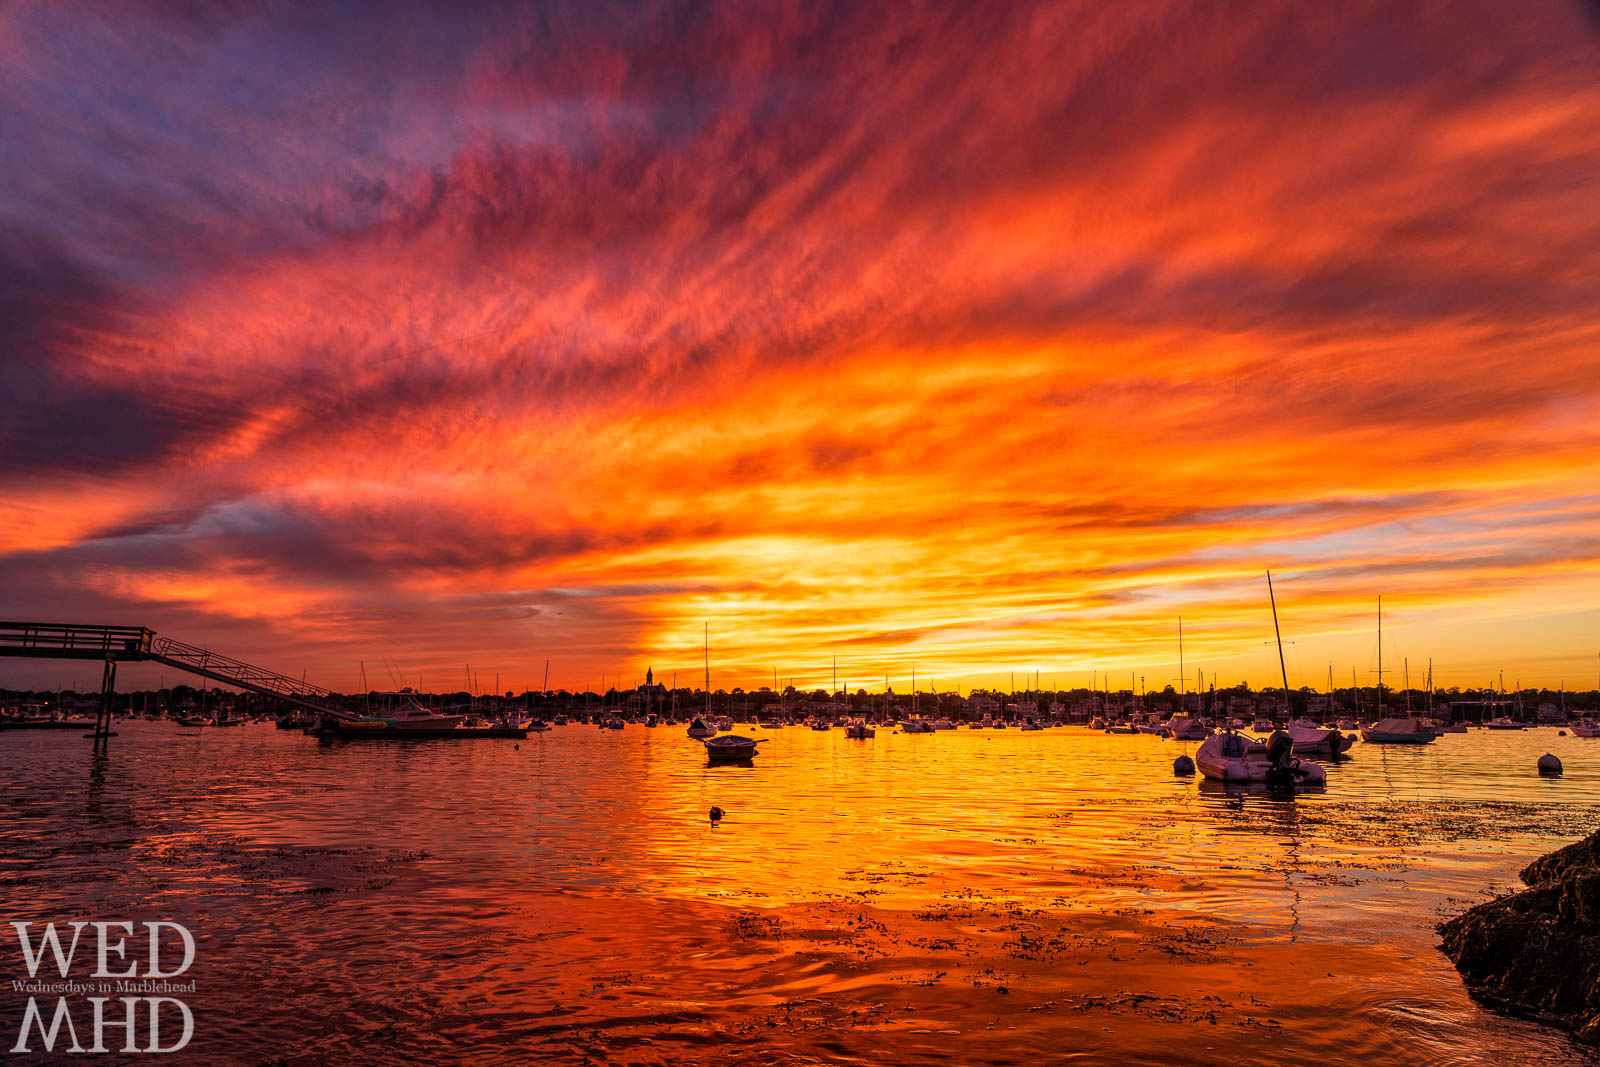 A late September sunset creates epic light from Peabody Lane with brilliant orange reflections on the waters of Marblehead harbor